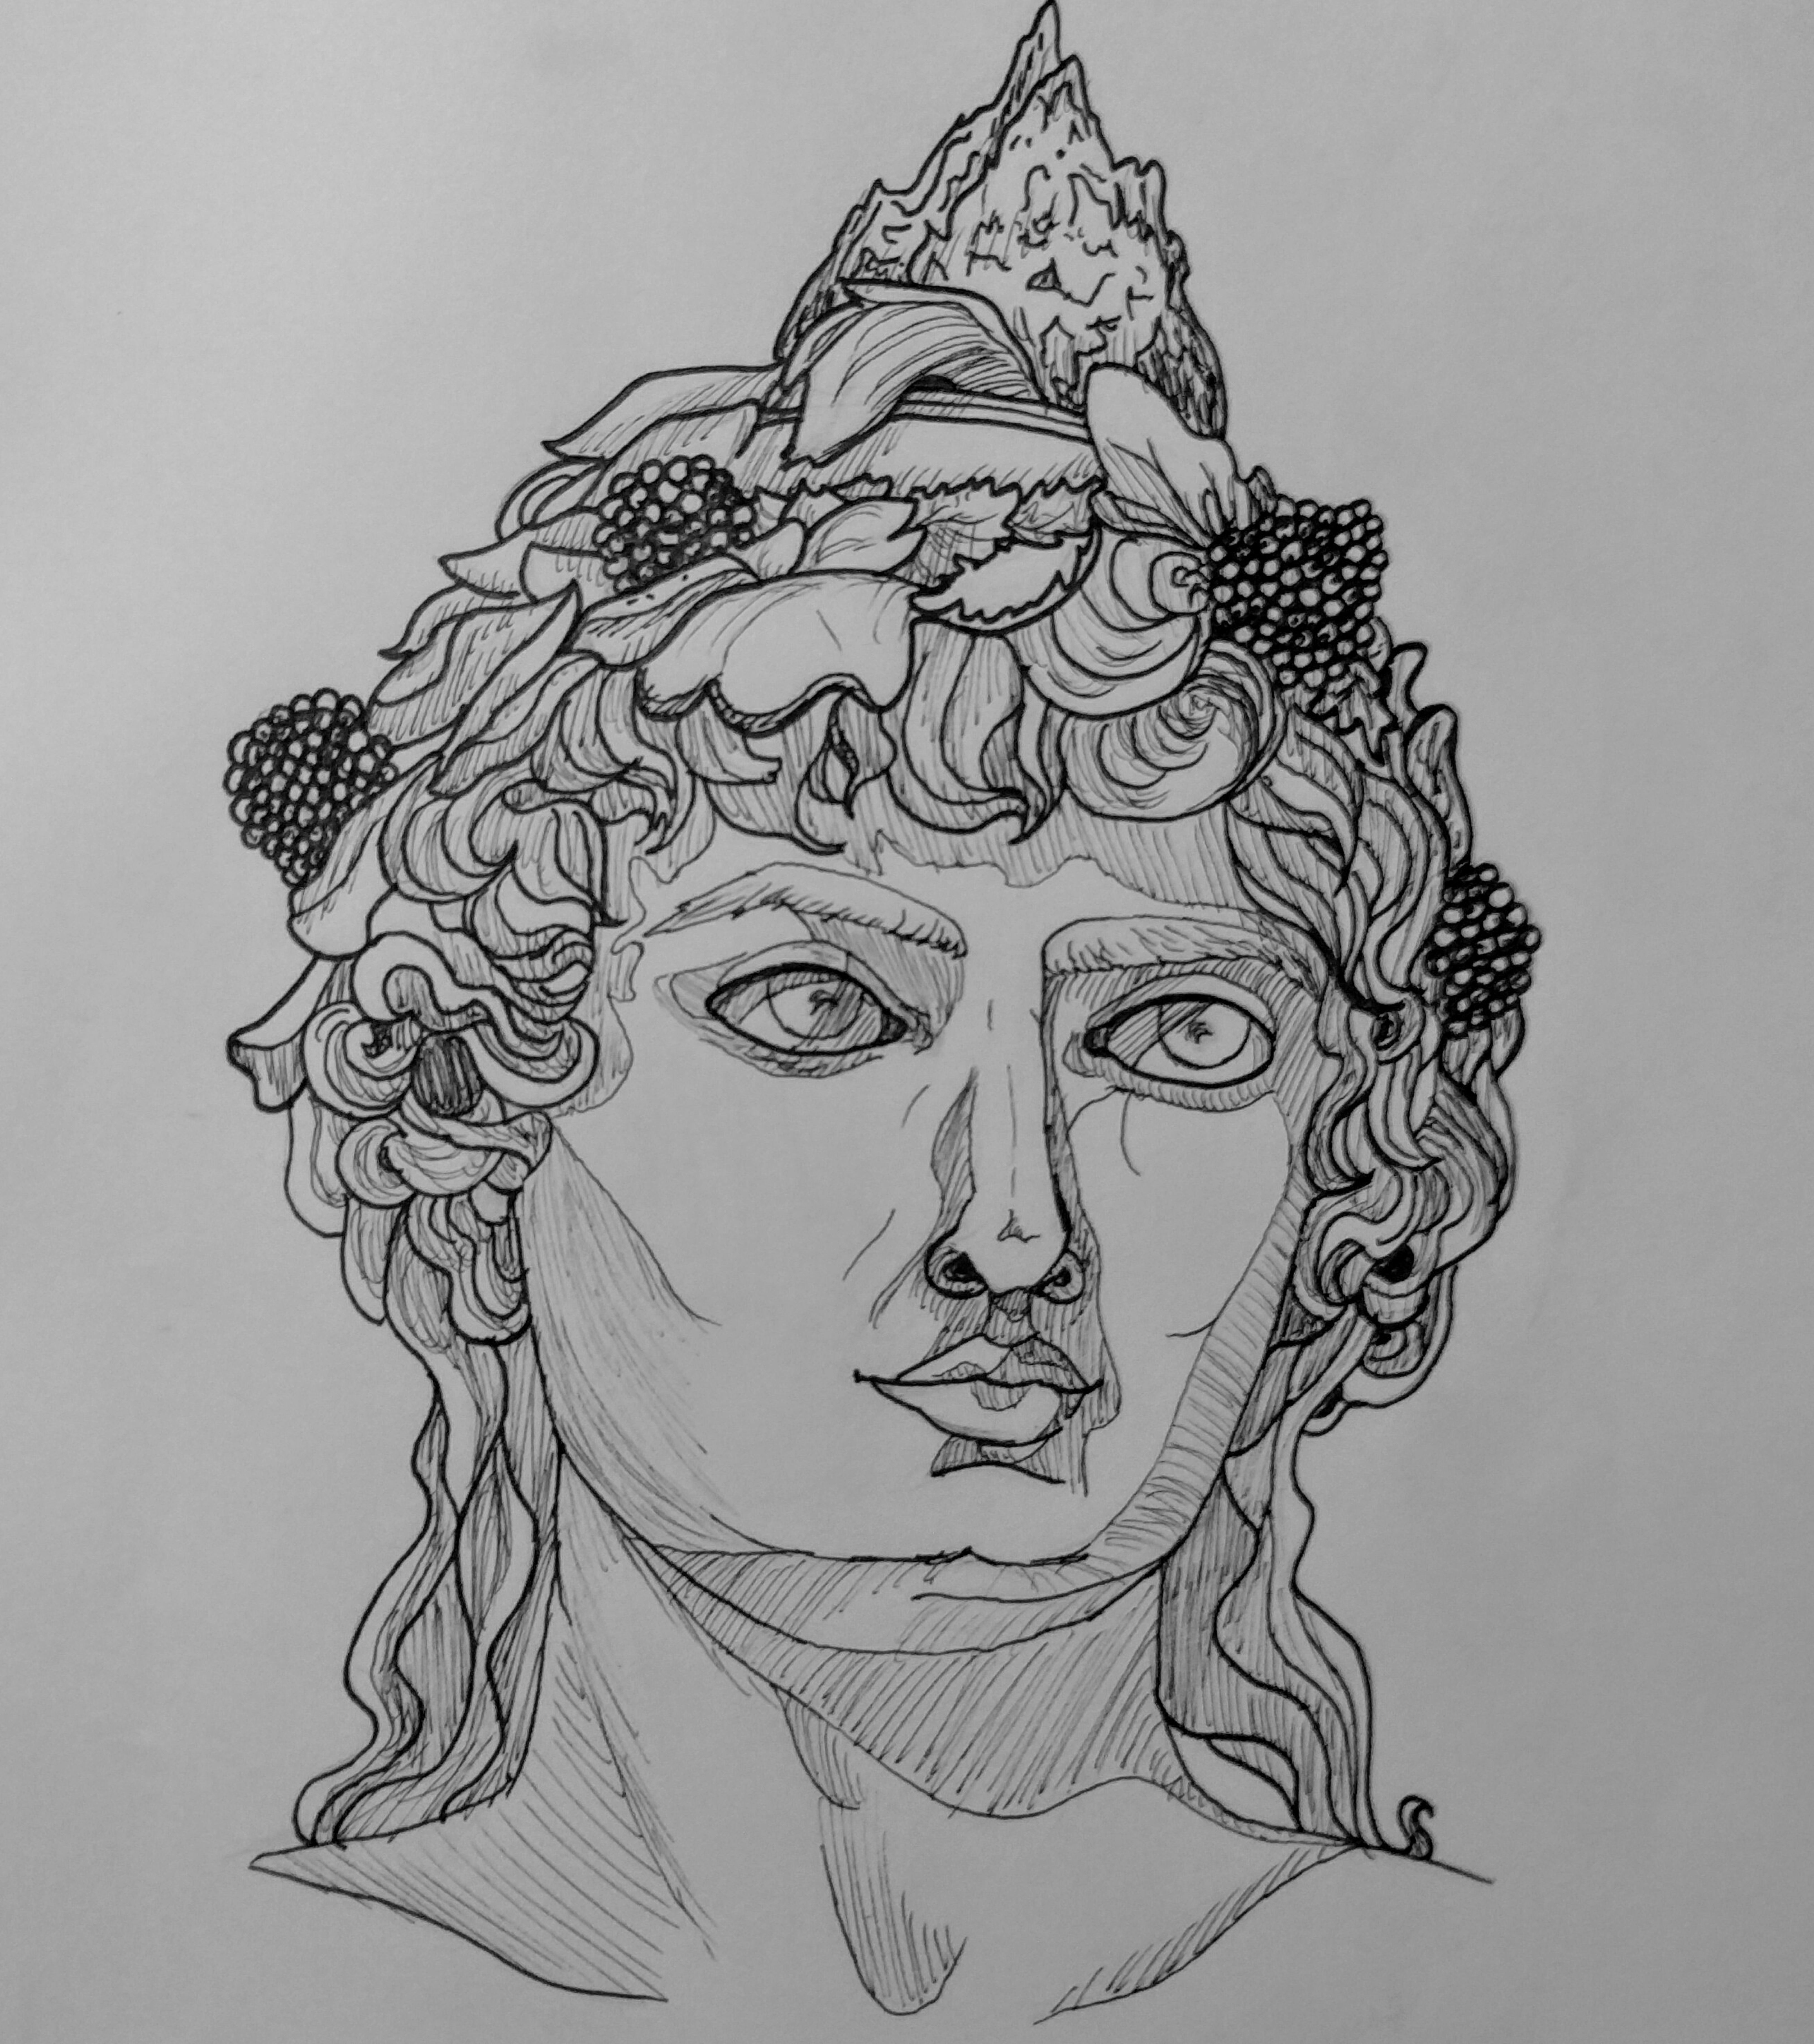 Black and white, pen sketch of Greek bust, depicting a young Dionysus.